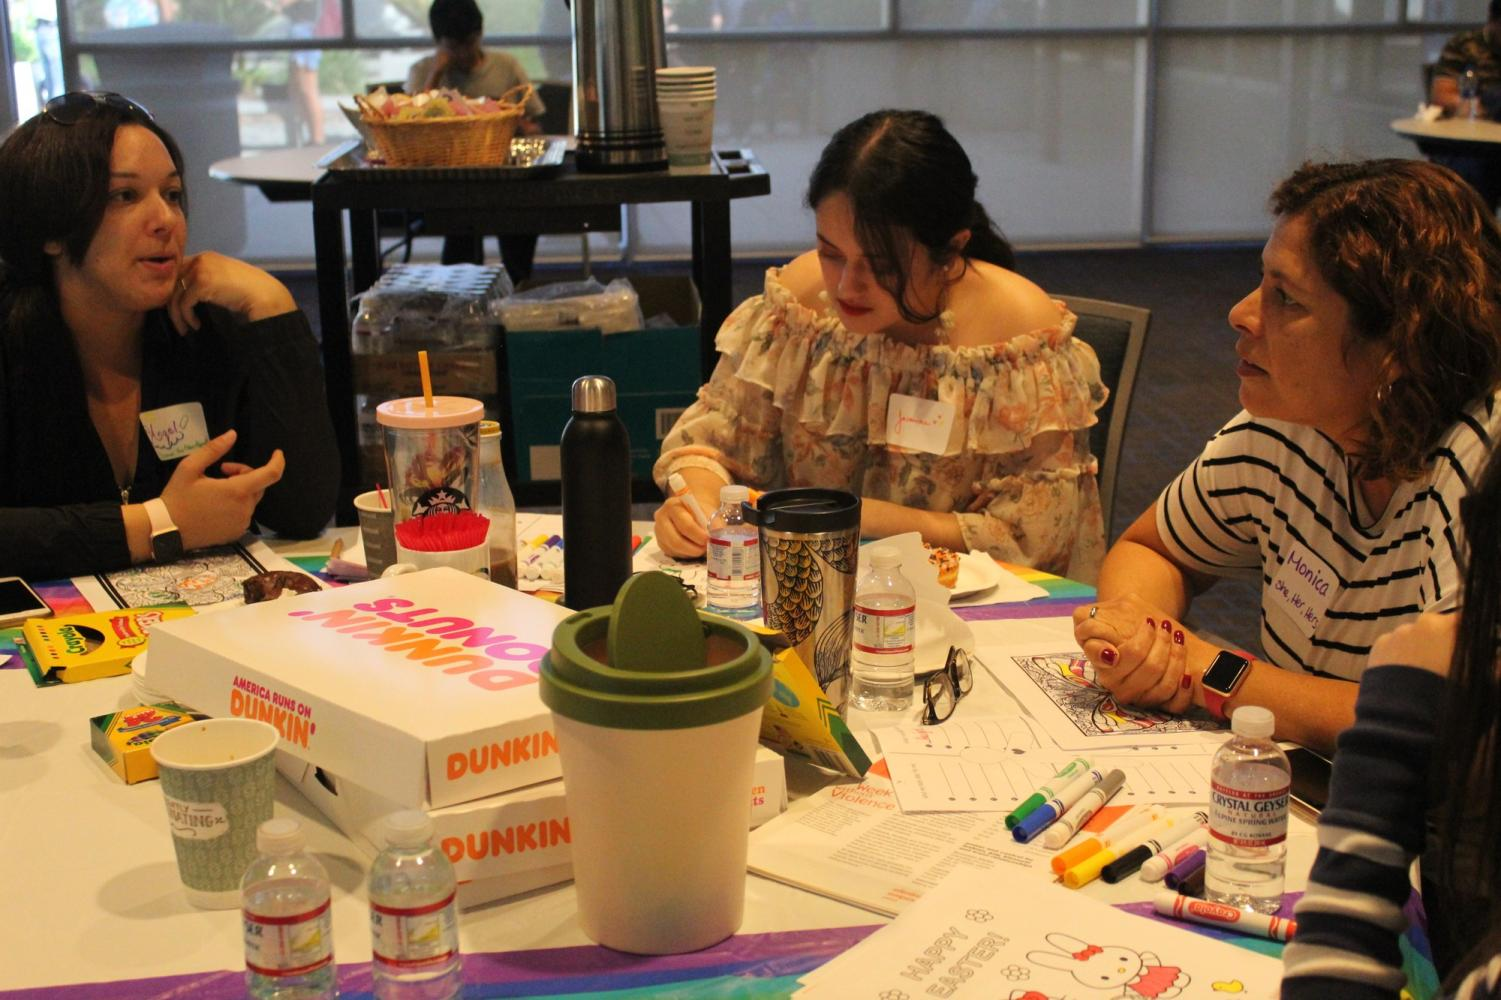 The first Queer Coffee at Cerritos College began in the Fall of 2018 and is a monthly event in support of the LGBTQ community. Their Domestic Violence workshop was held on Oct. 15, 2019. Photo credit: Naila Salguero